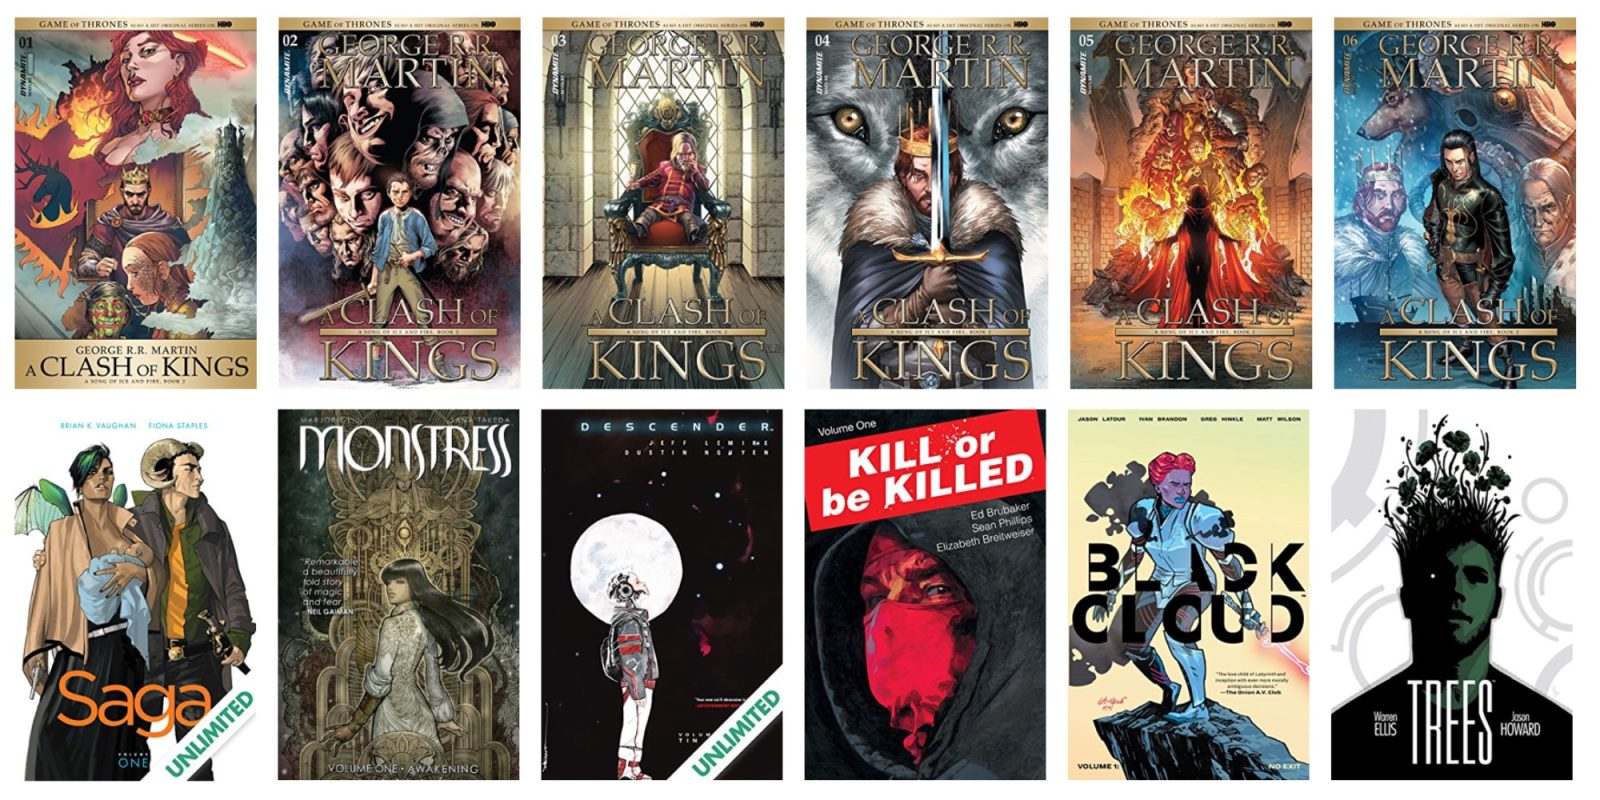 Save up to 67% on Game of Thrones and Image digital comics from $1 at ComiXology